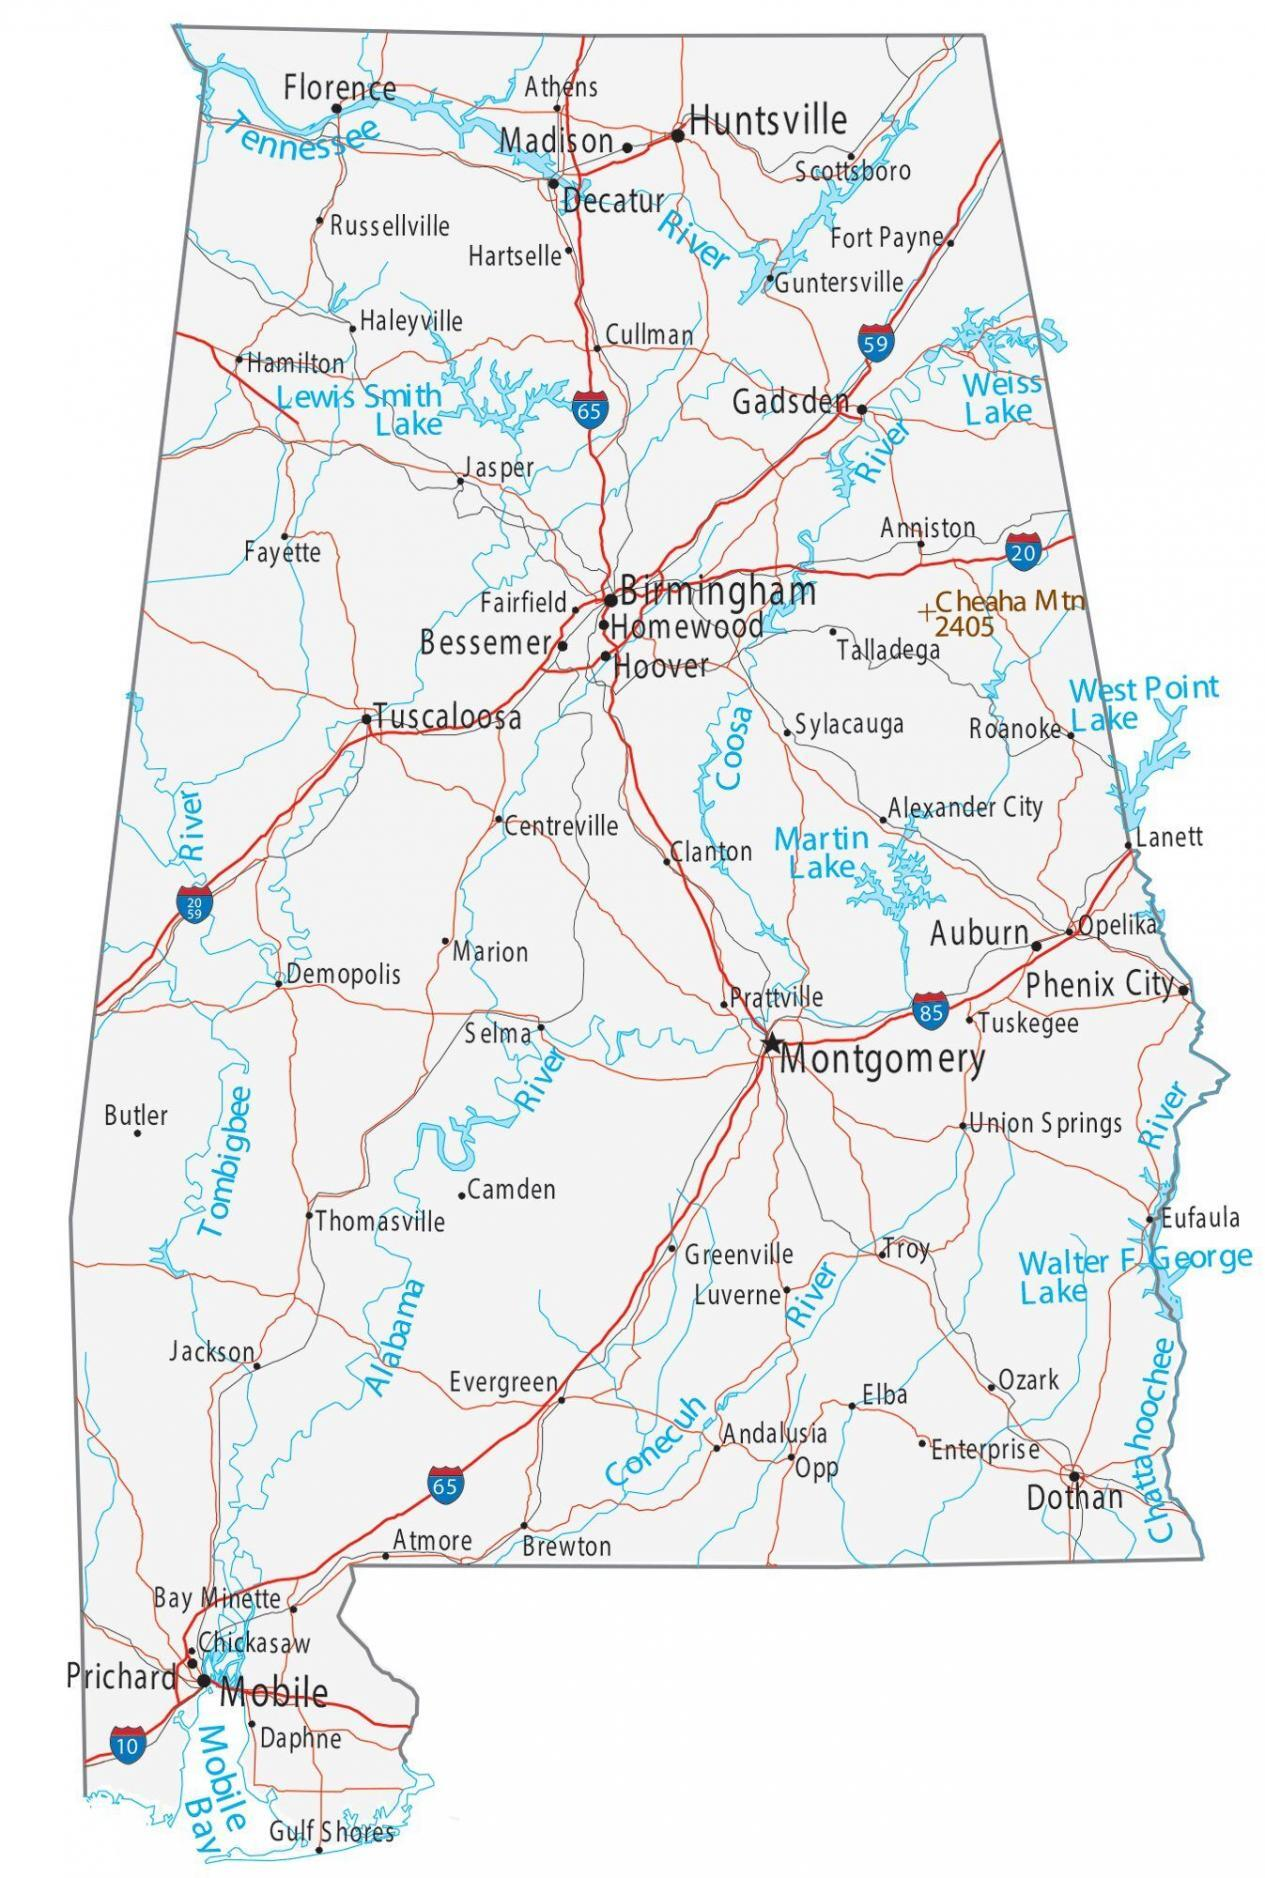 map of mississippi and alabama with cities Map Of Alabama Cities And Roads Gis Geography map of mississippi and alabama with cities